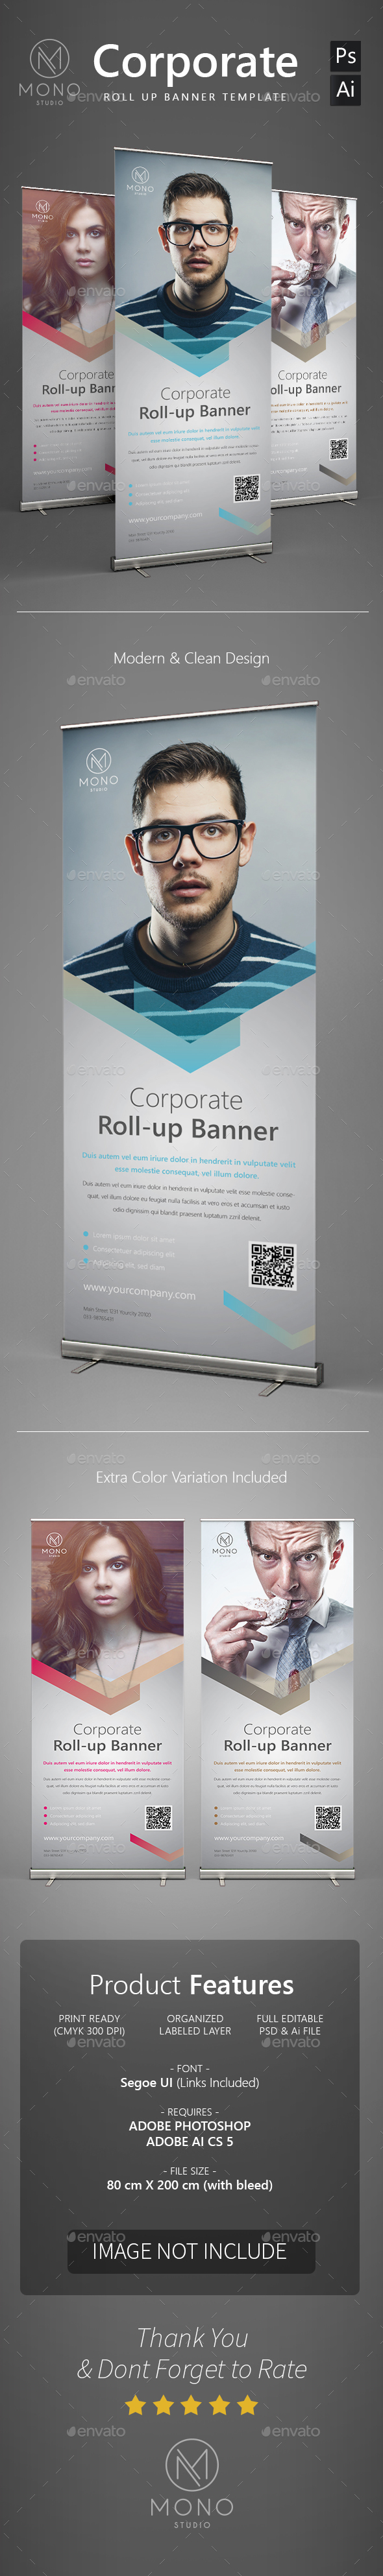 Corporate Roll Up Banner 2 - Signage Print Templates